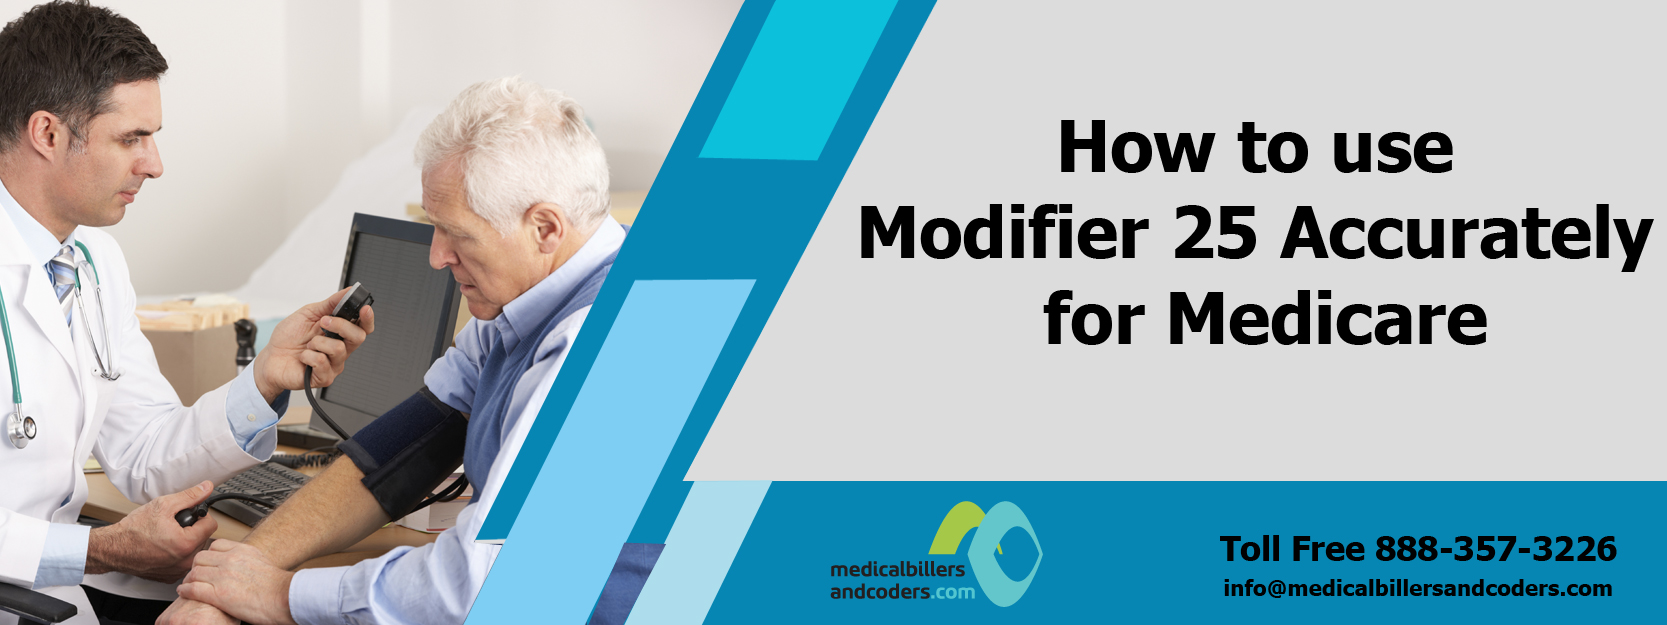 How to use Modifier 25 Accurately for Medicare